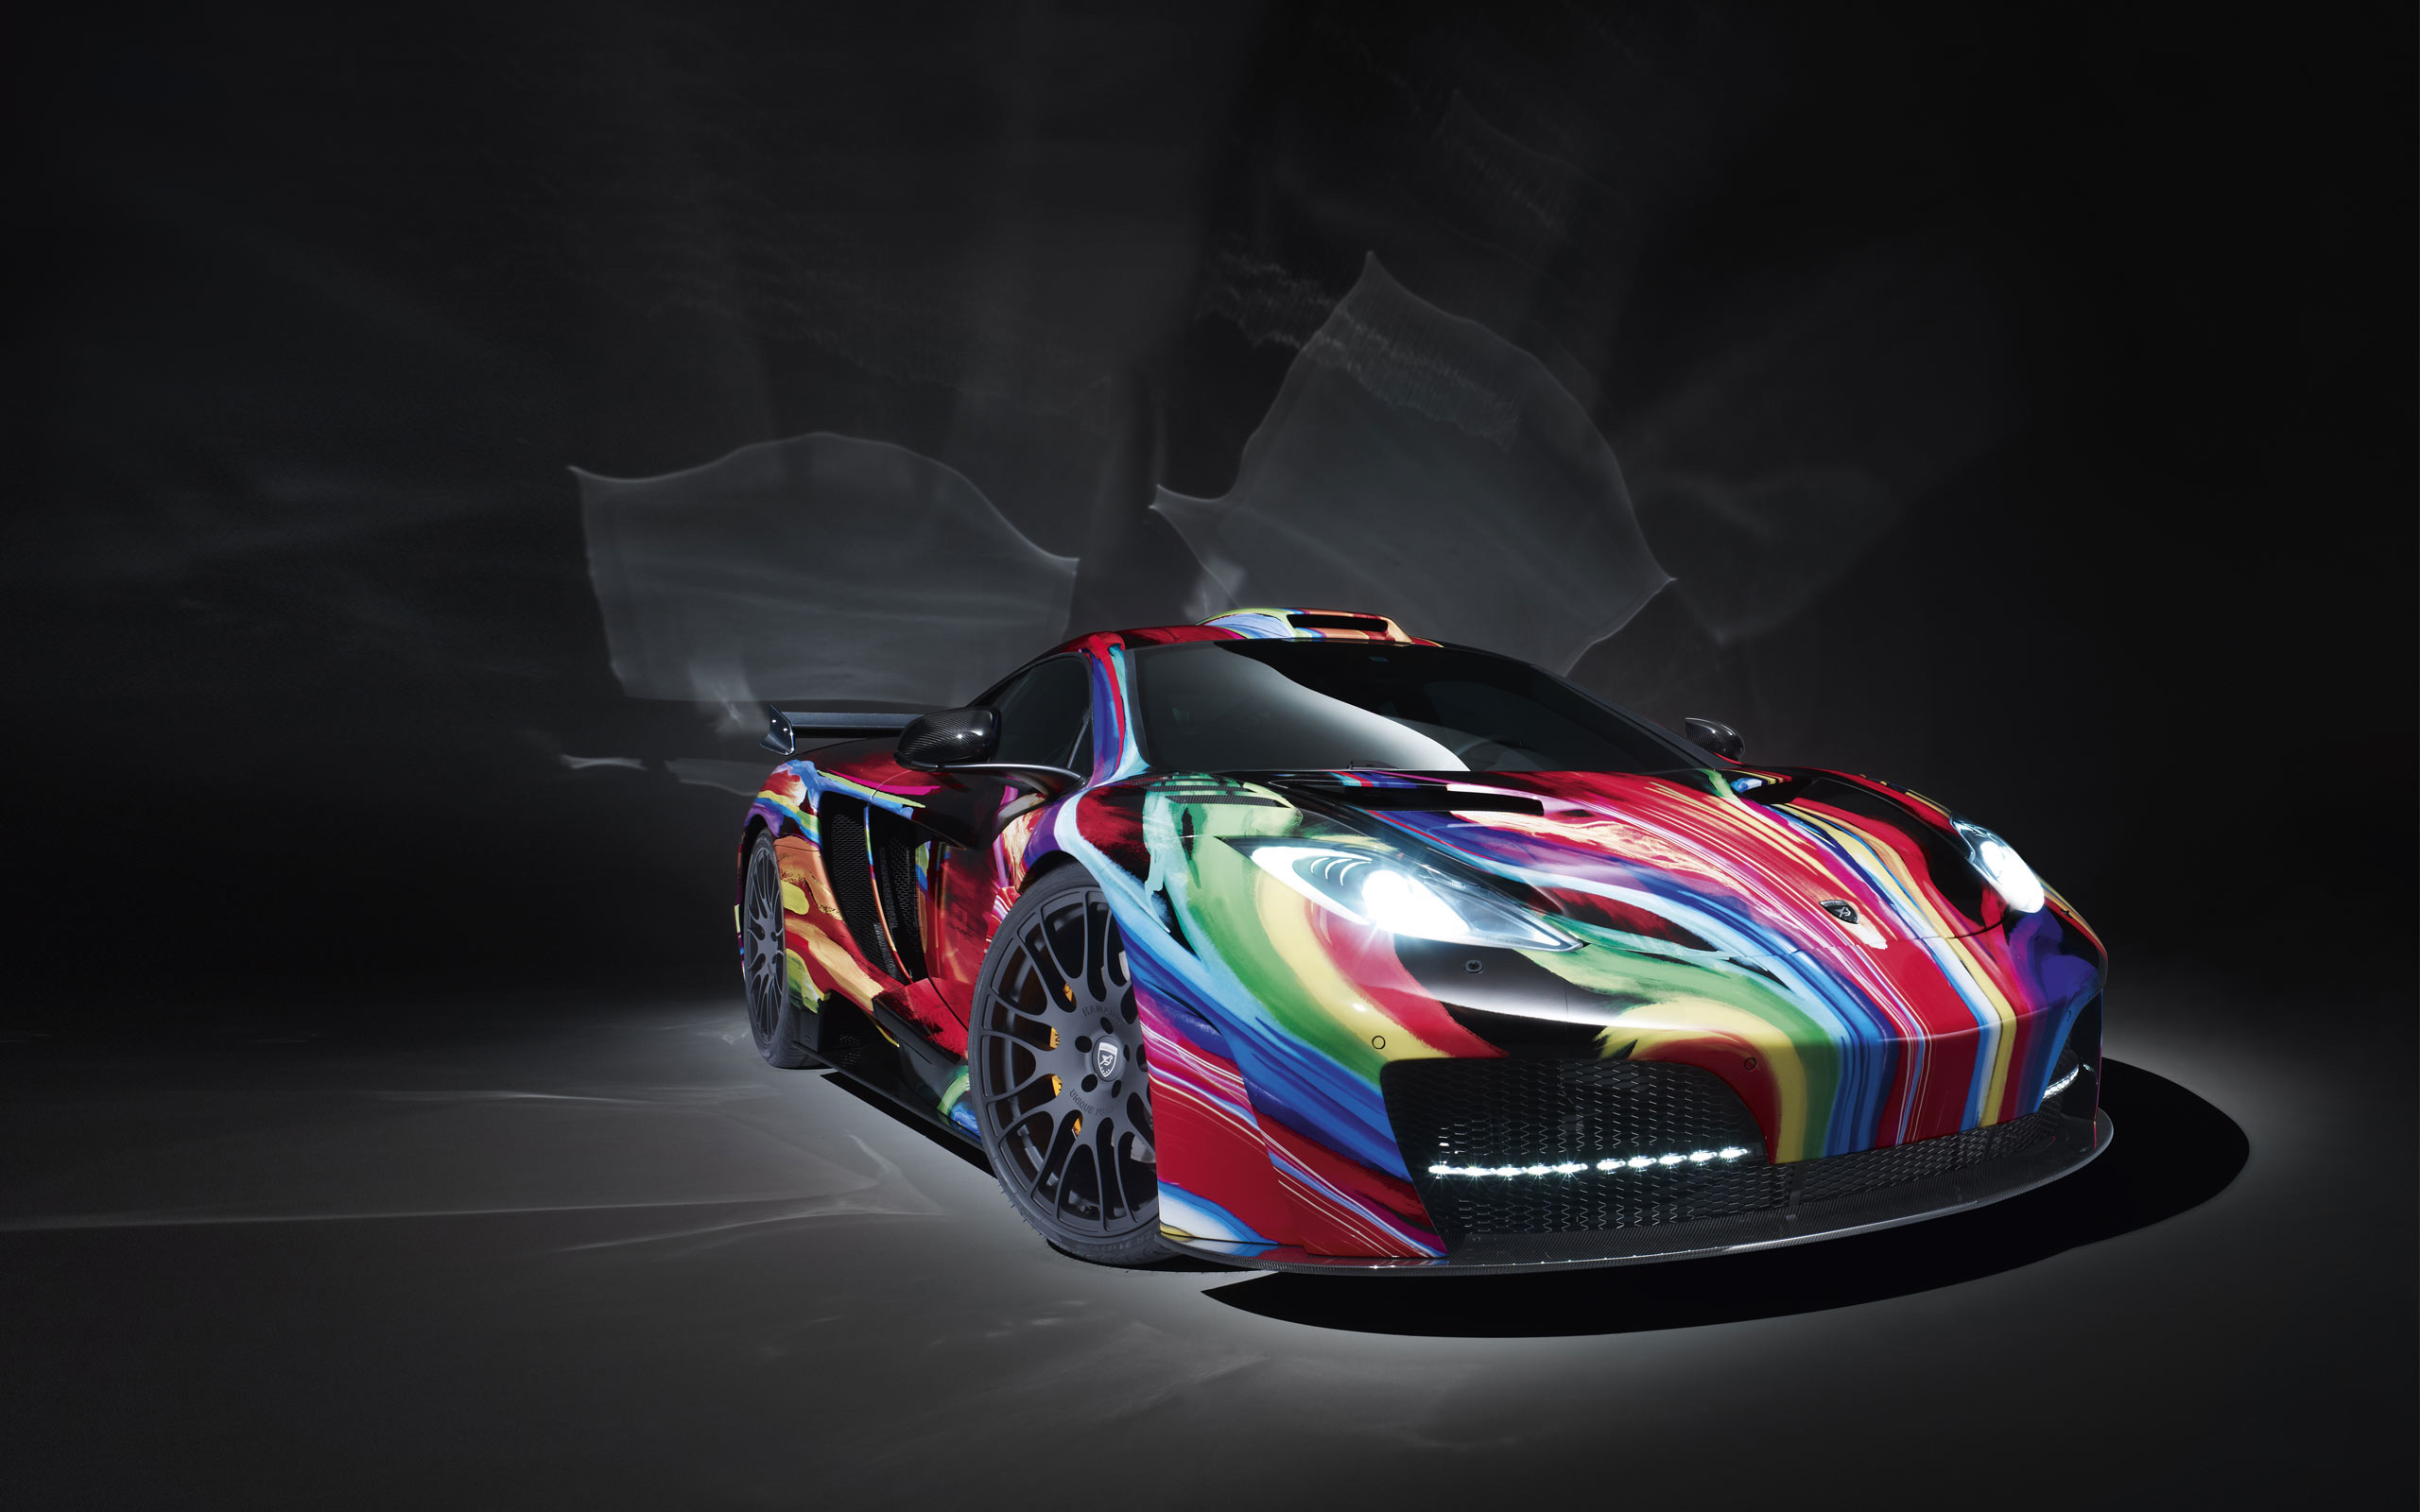 McLaren MP4 12C Art Car Hamann 770.46 Kb